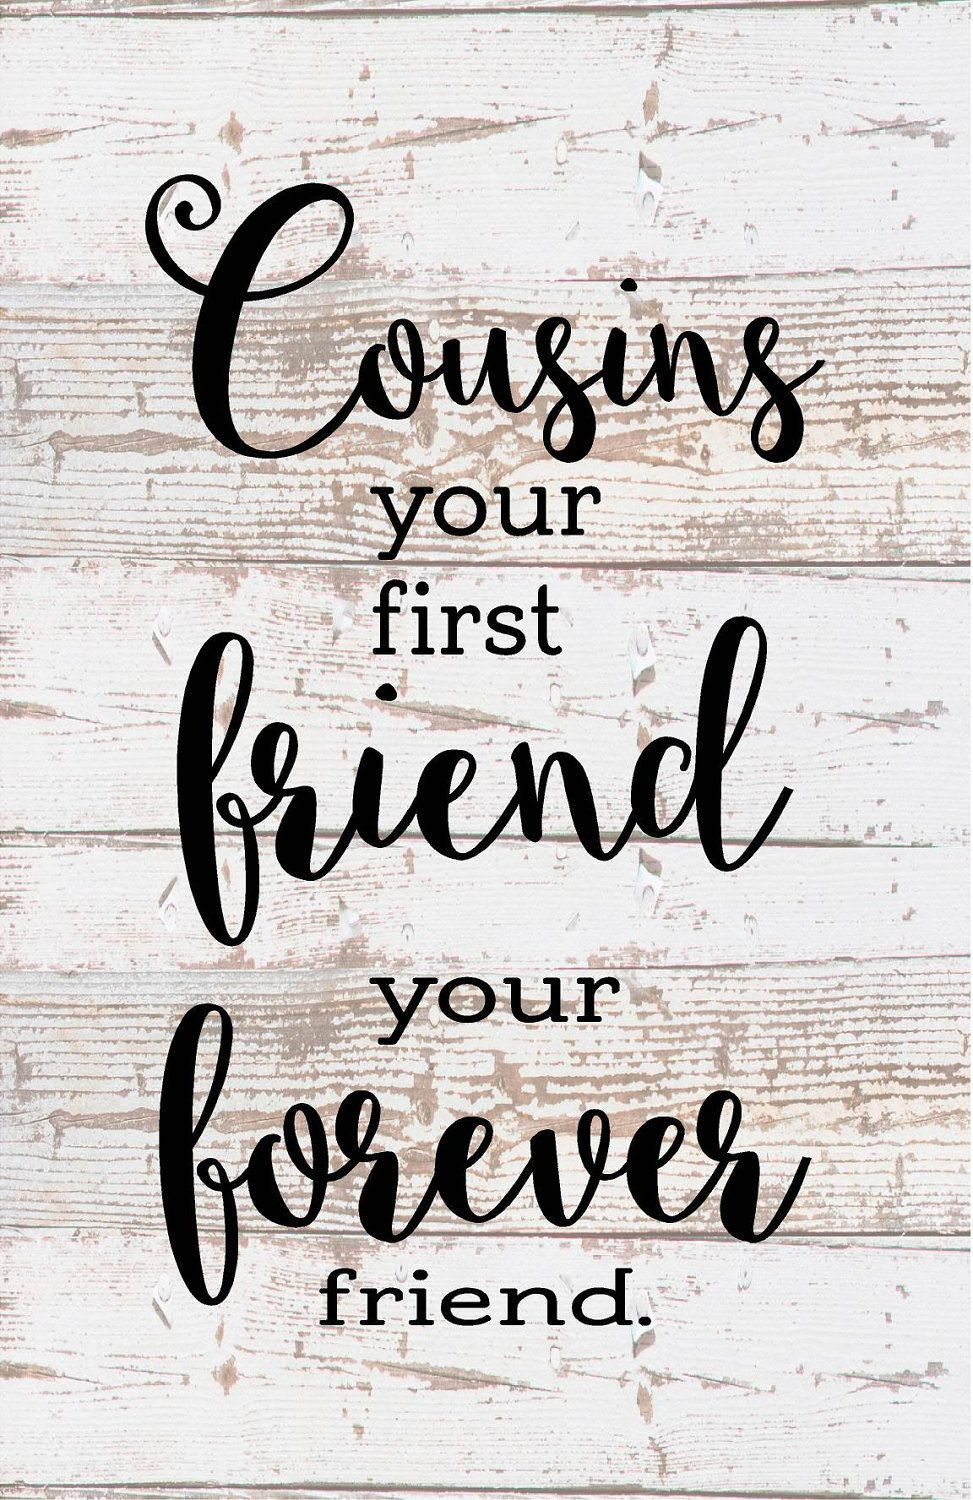 Cousins are your first friend forever friend - Wood Sign or Canvas ...